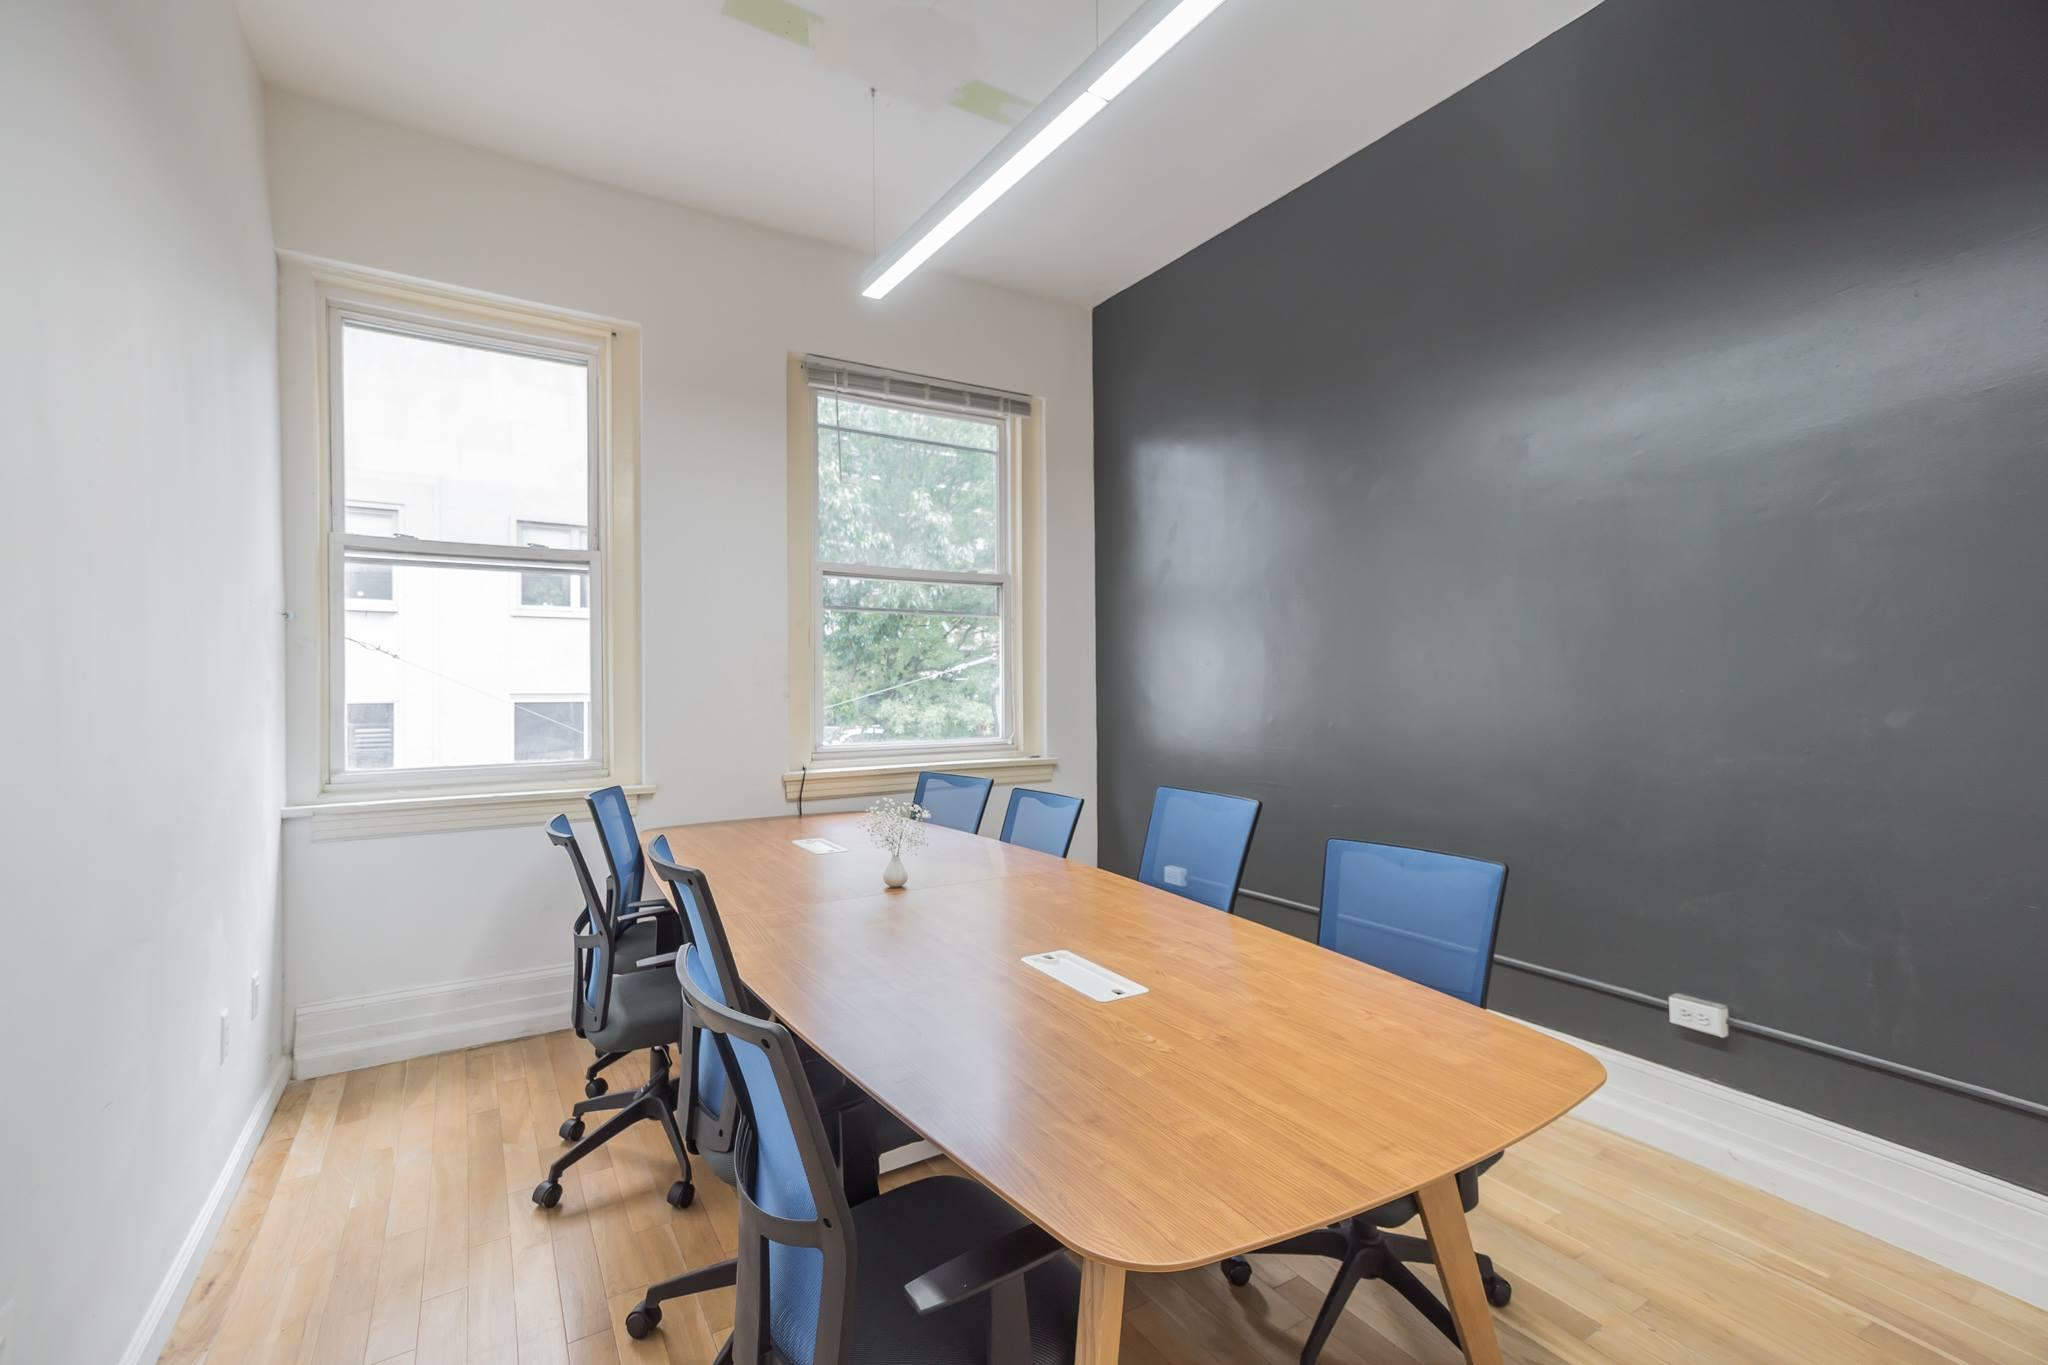 Task Up - Conference Room for 6